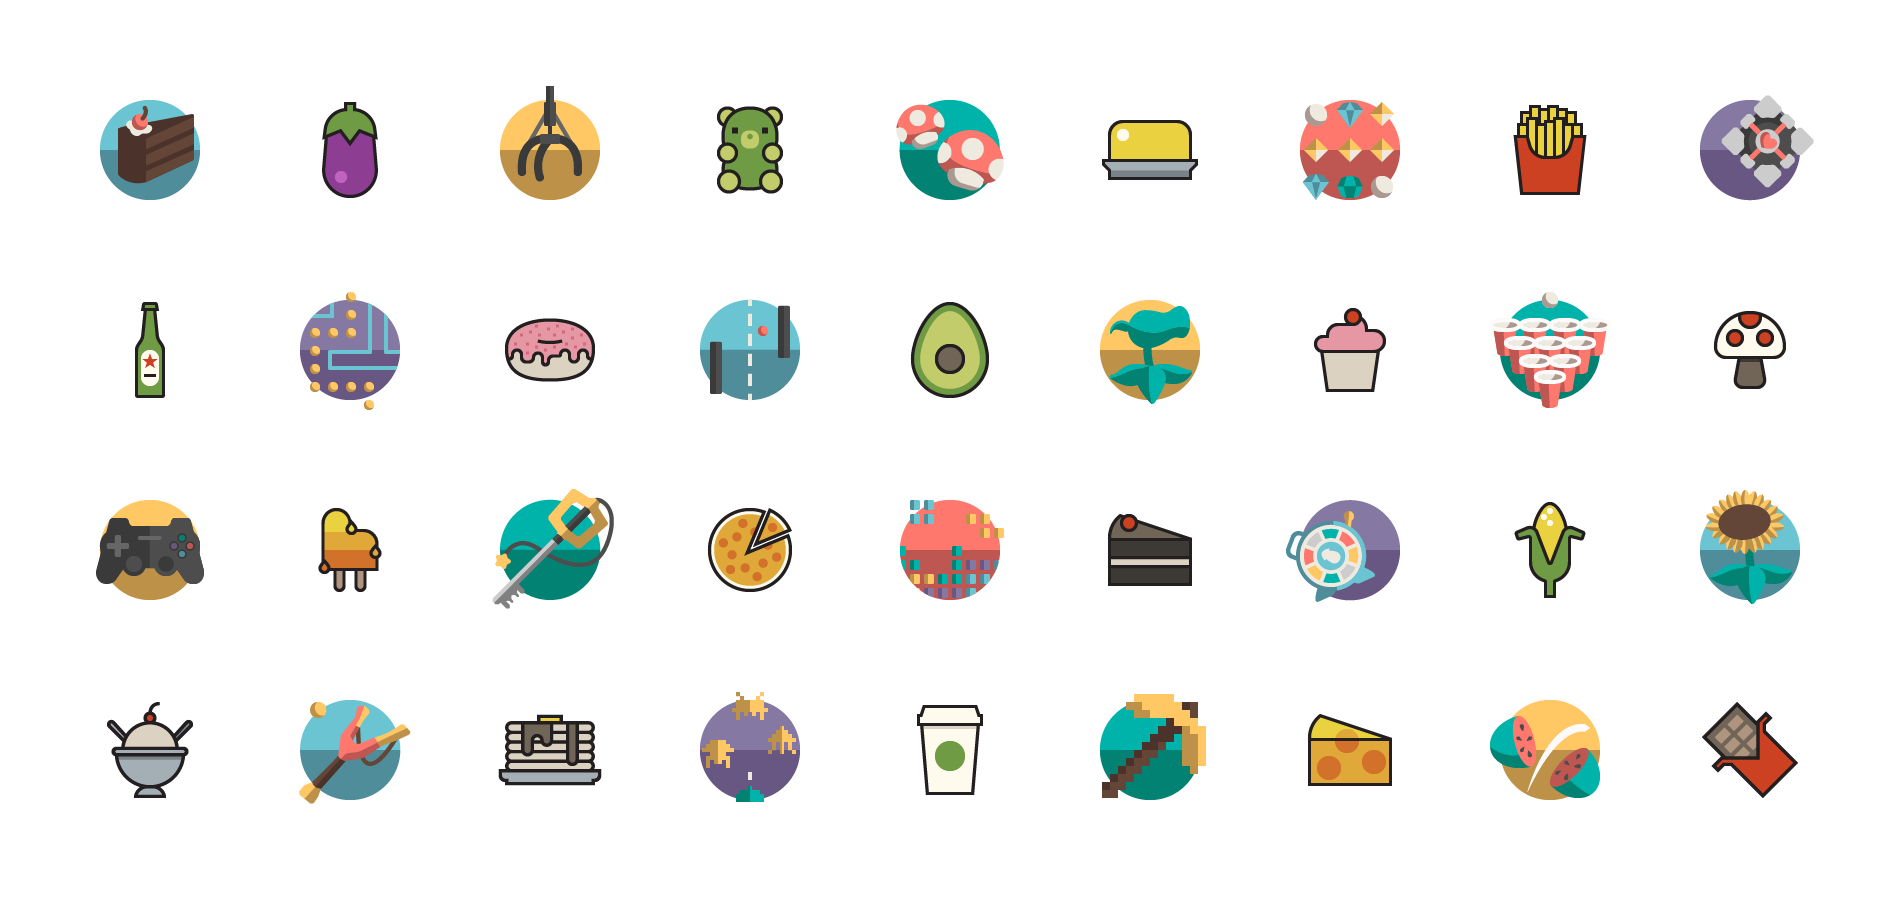 Free Download: to [icon] collection